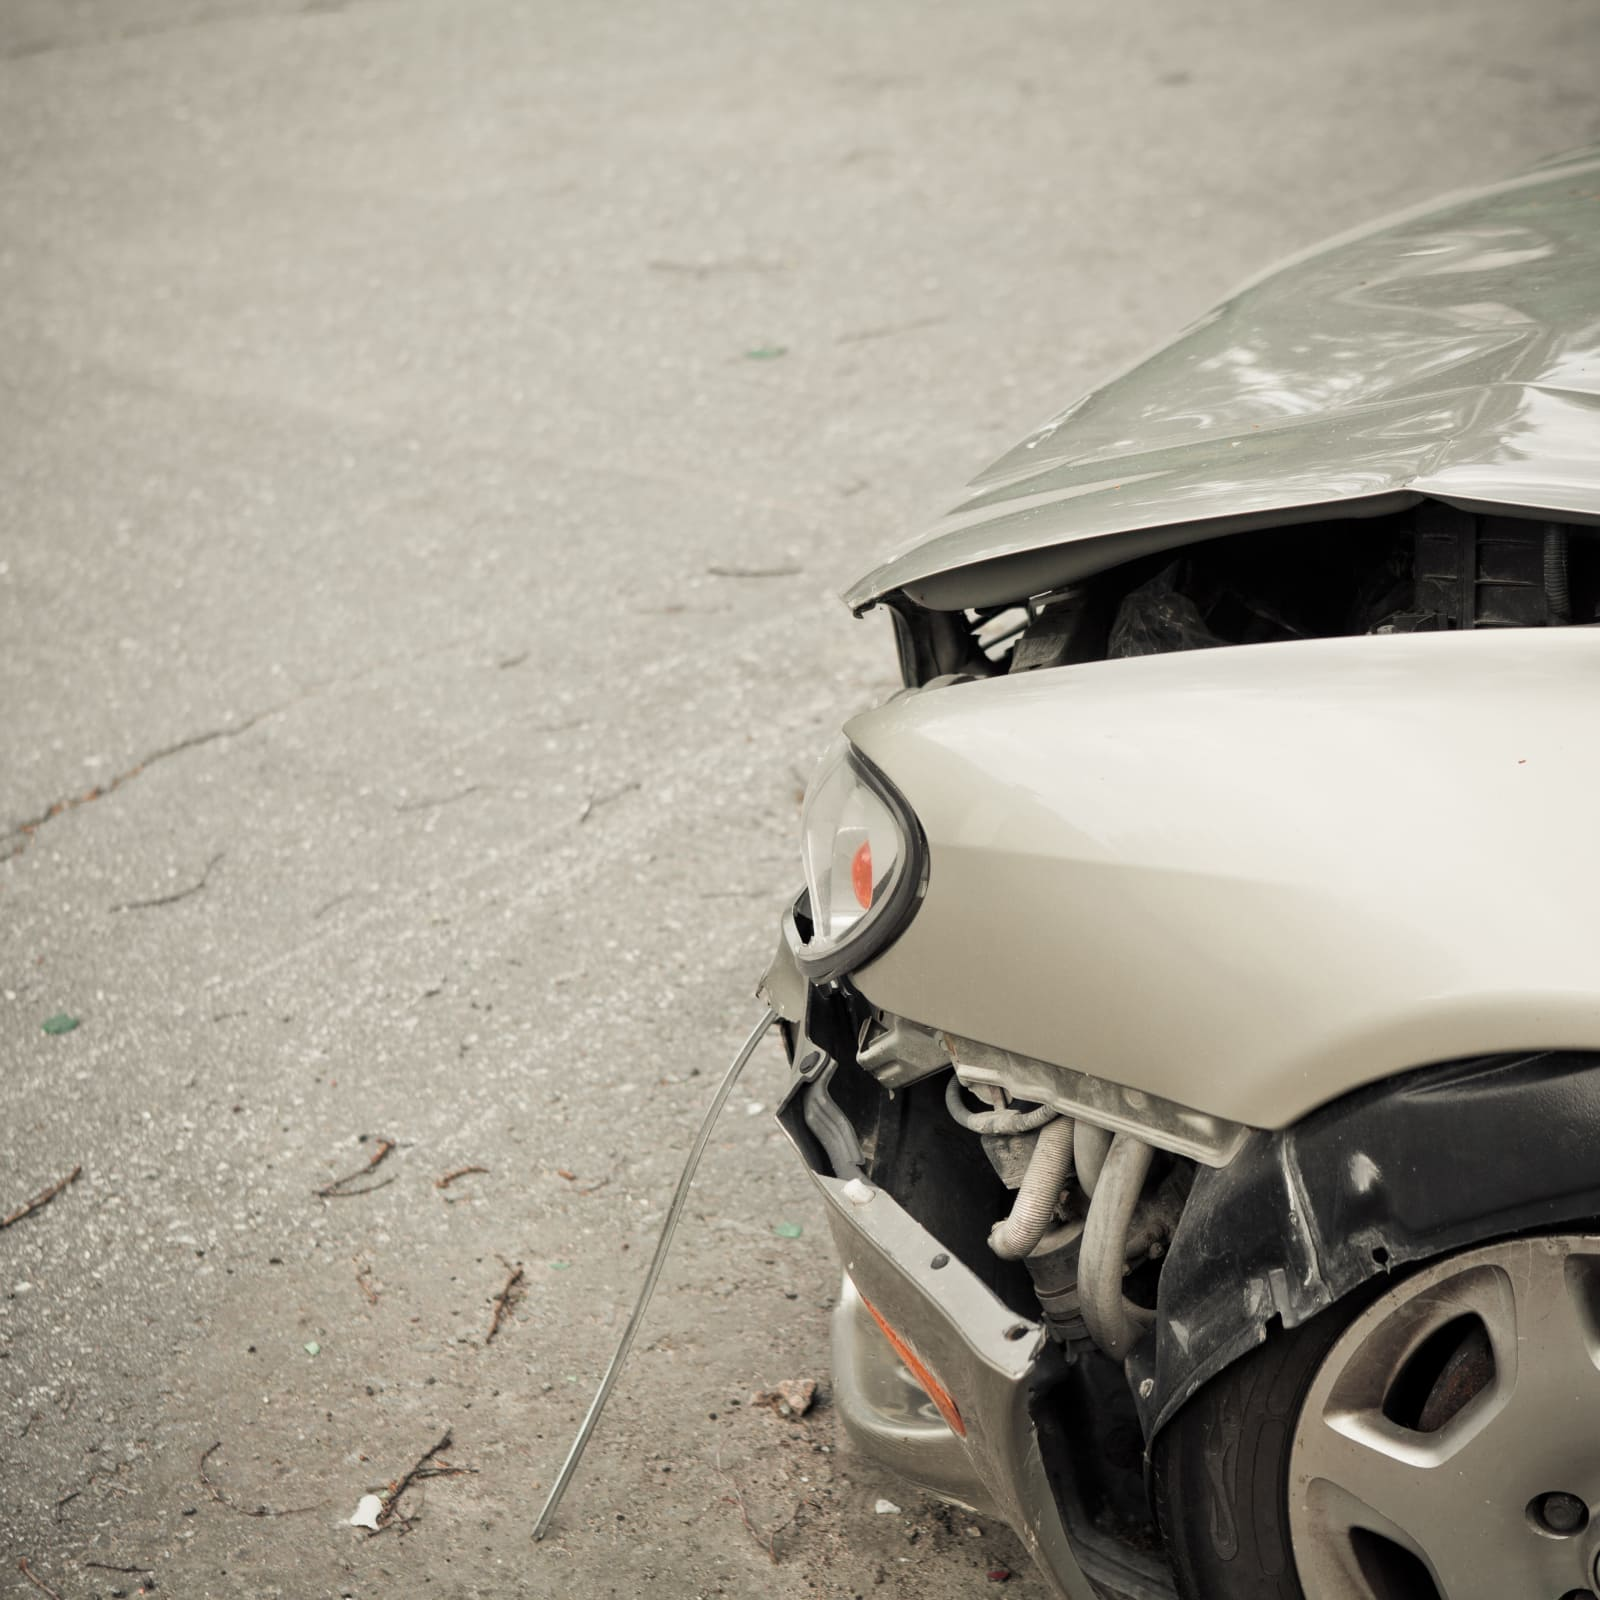 How Long After a Car Accident Can You File a Claim - ValuePenguin